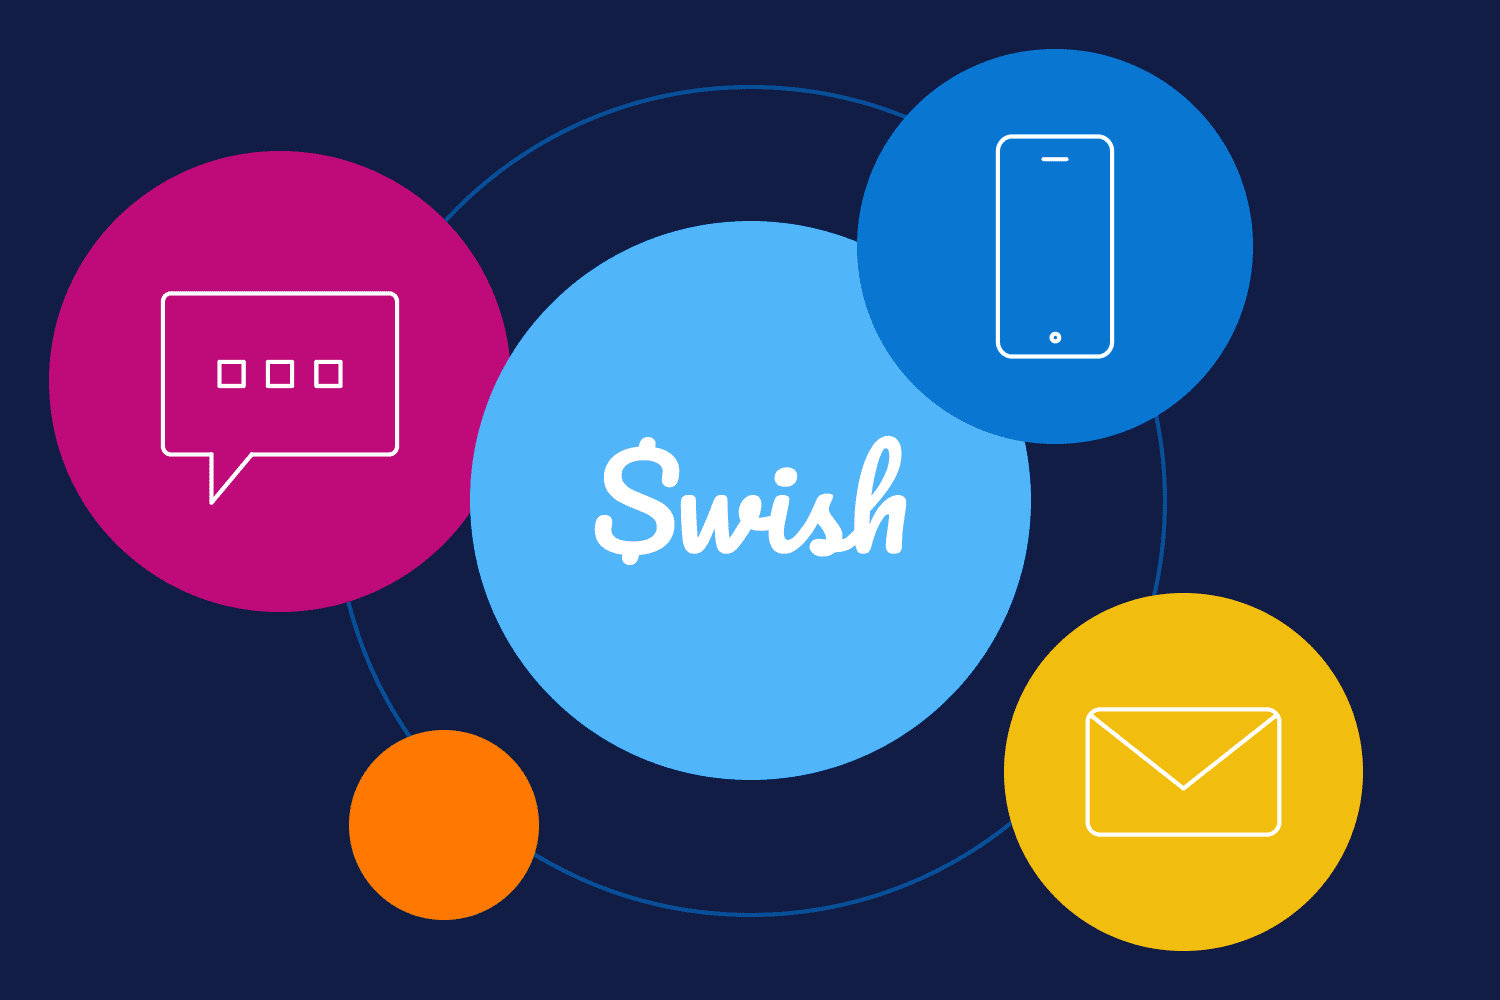 Swish uses Iterable to engage users across email, SMS and mobile push